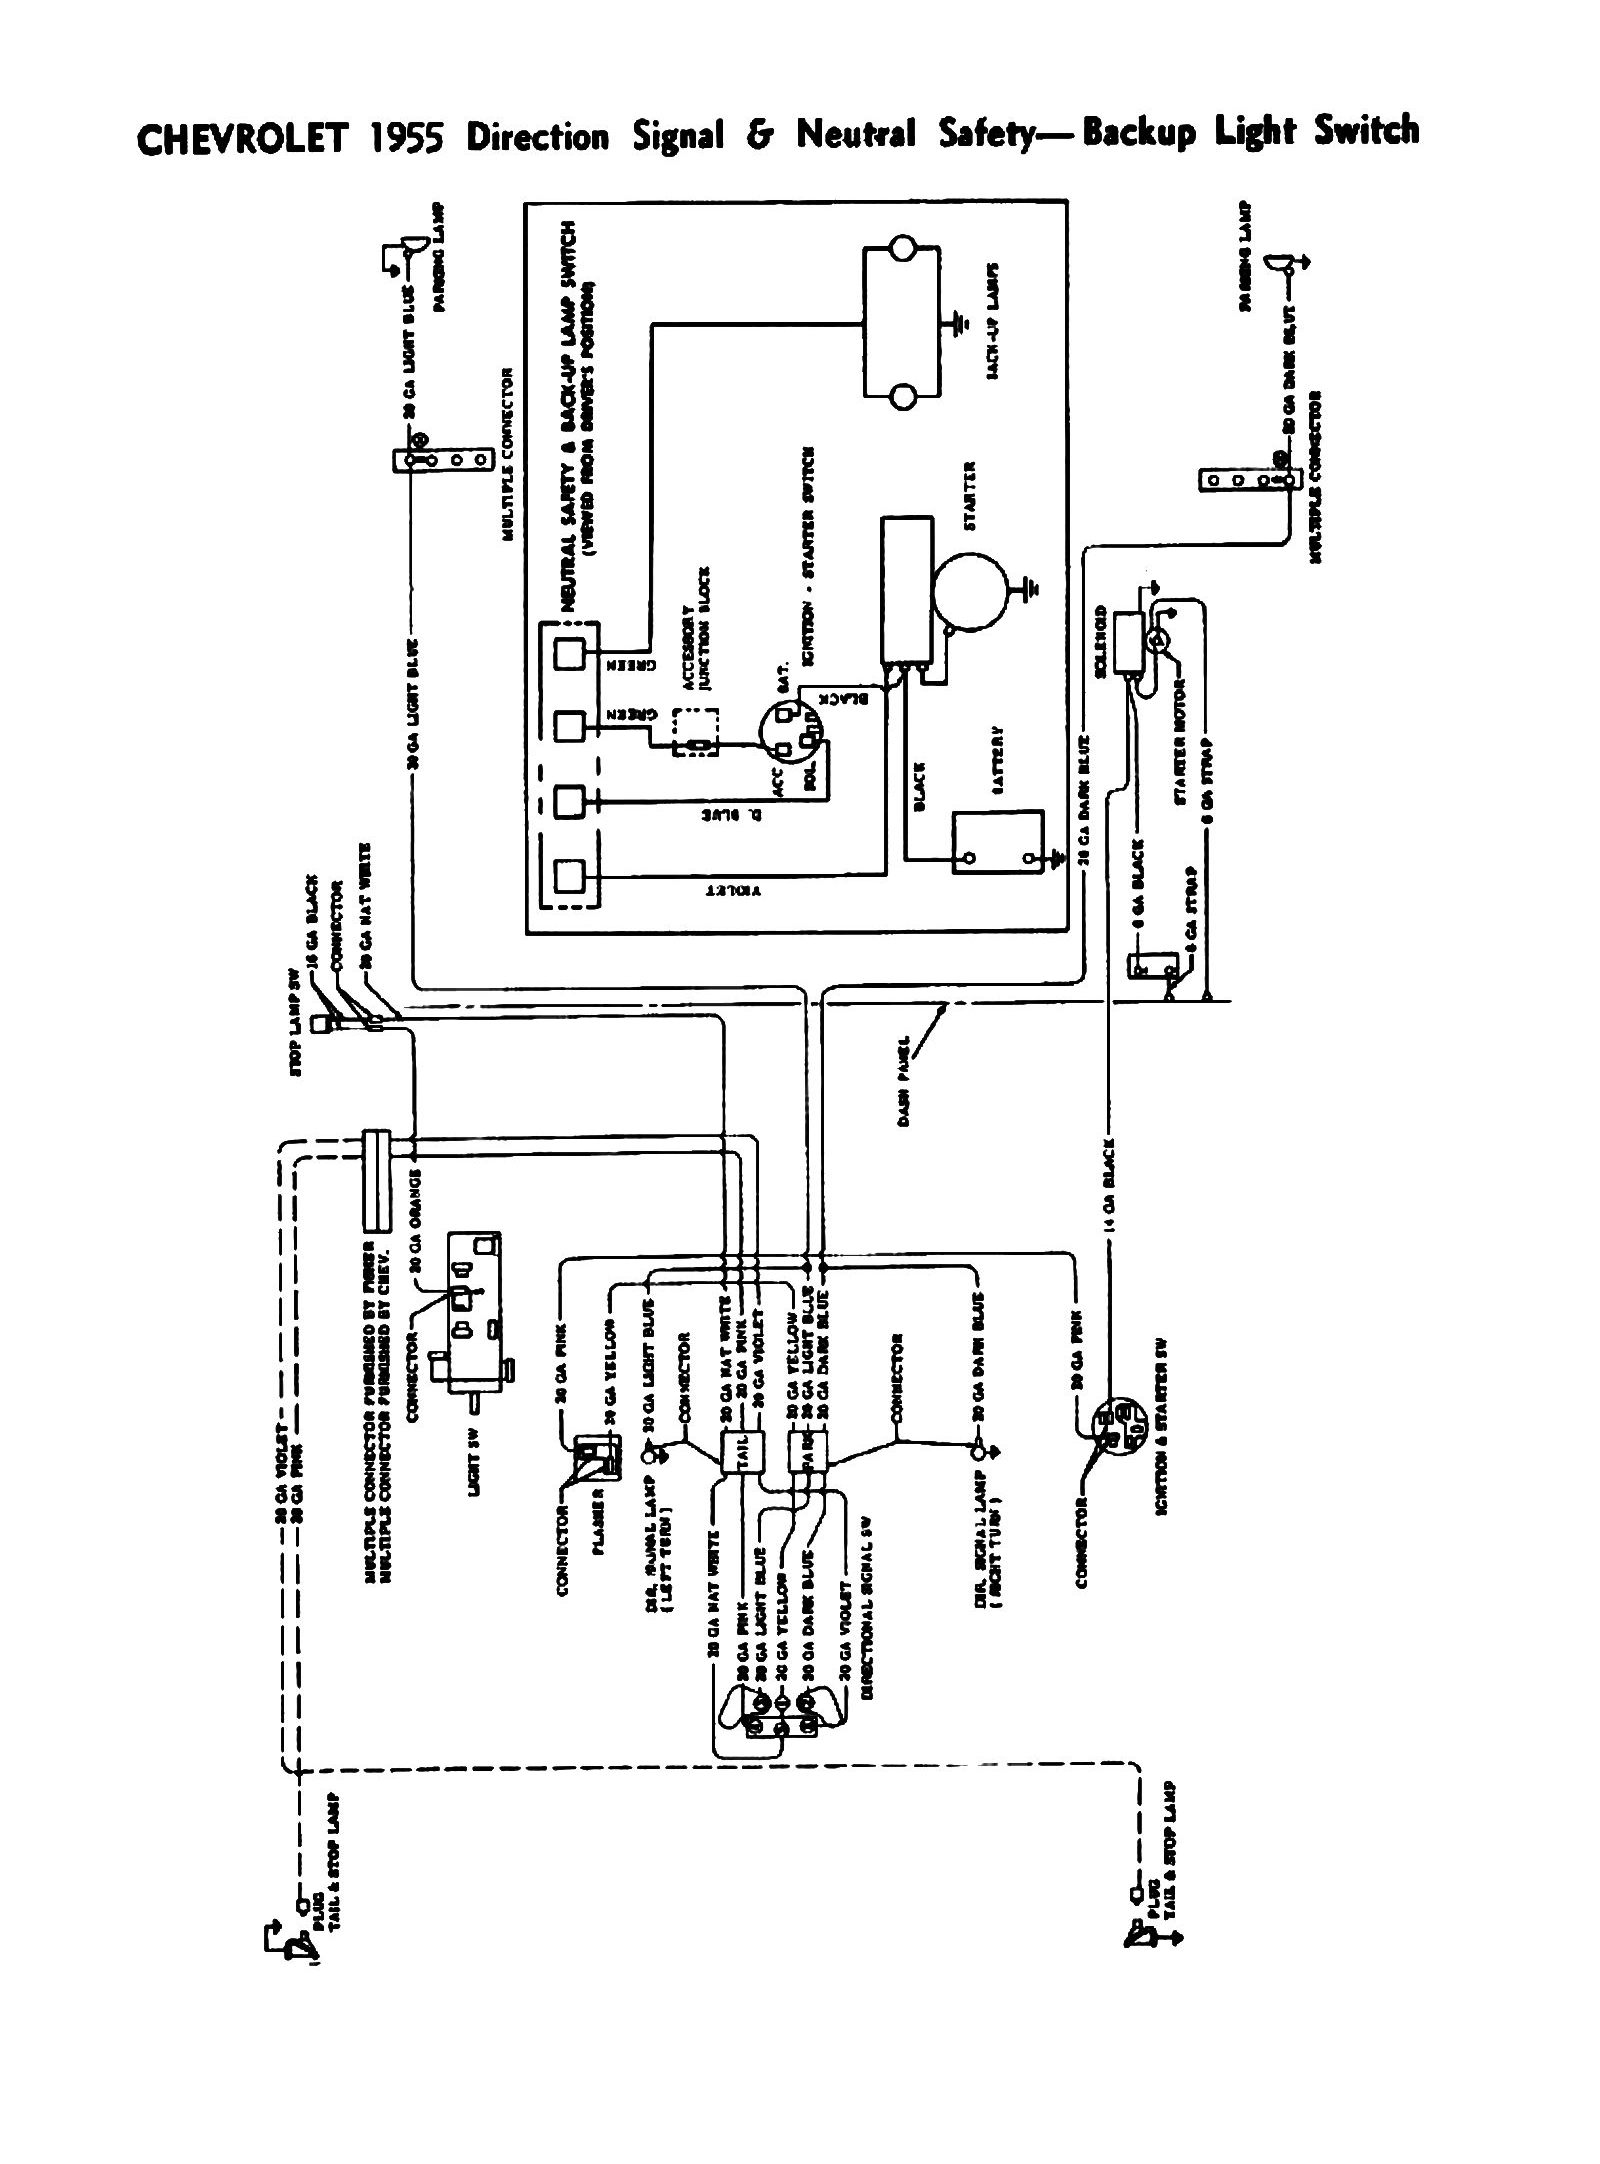 55signal chevy wiring diagrams 84 chevy distributor wiring schematic at gsmx.co